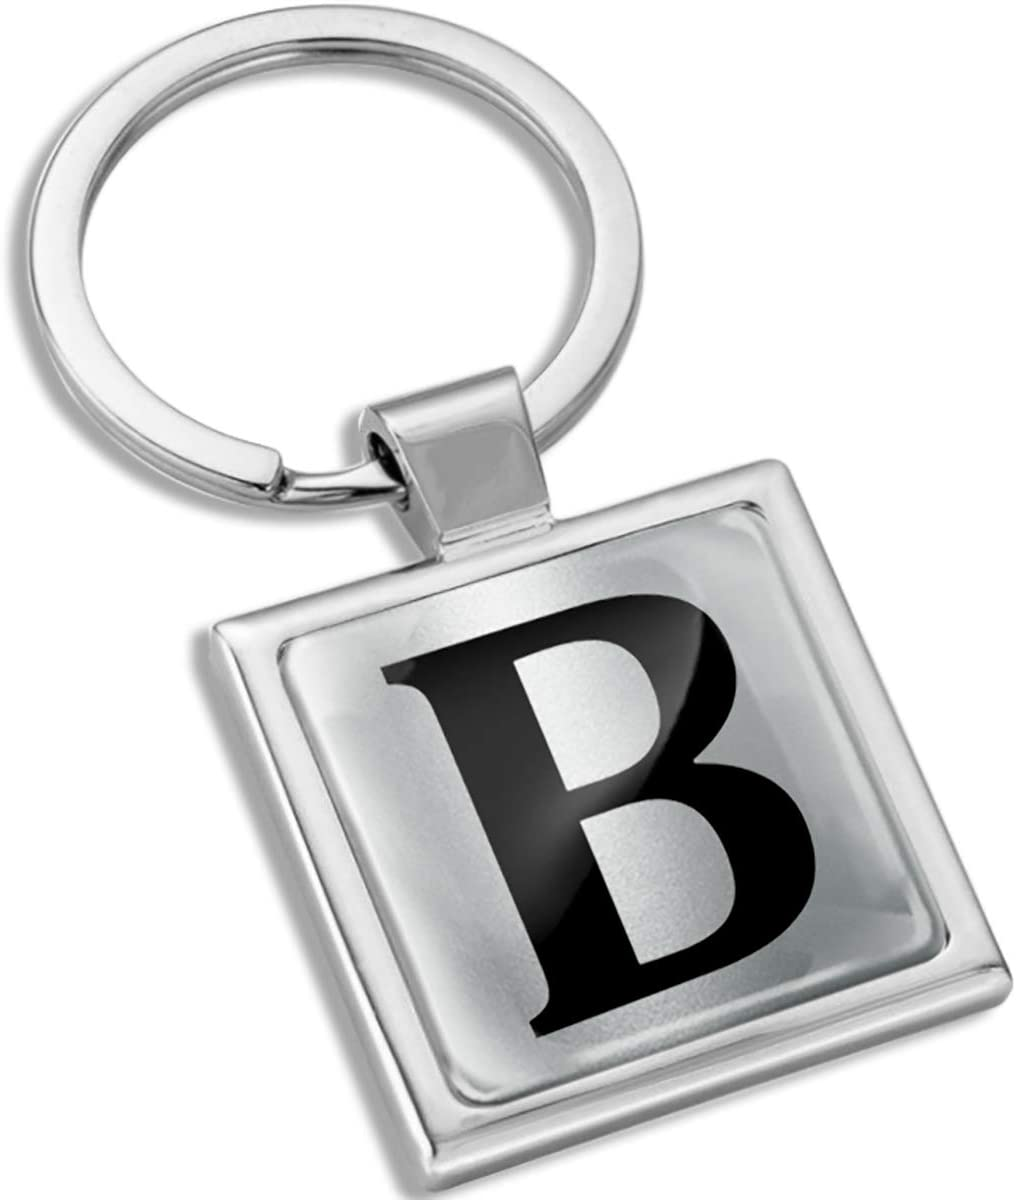 Biomar Labs 3D Metal A-Z Alphabet Personalized Name Initials Keyring Key Ring Chain Stainless Steel Gift Box Men Women Keychain Bag Accessories Jewelry Handbag Silver Letter B KK 132